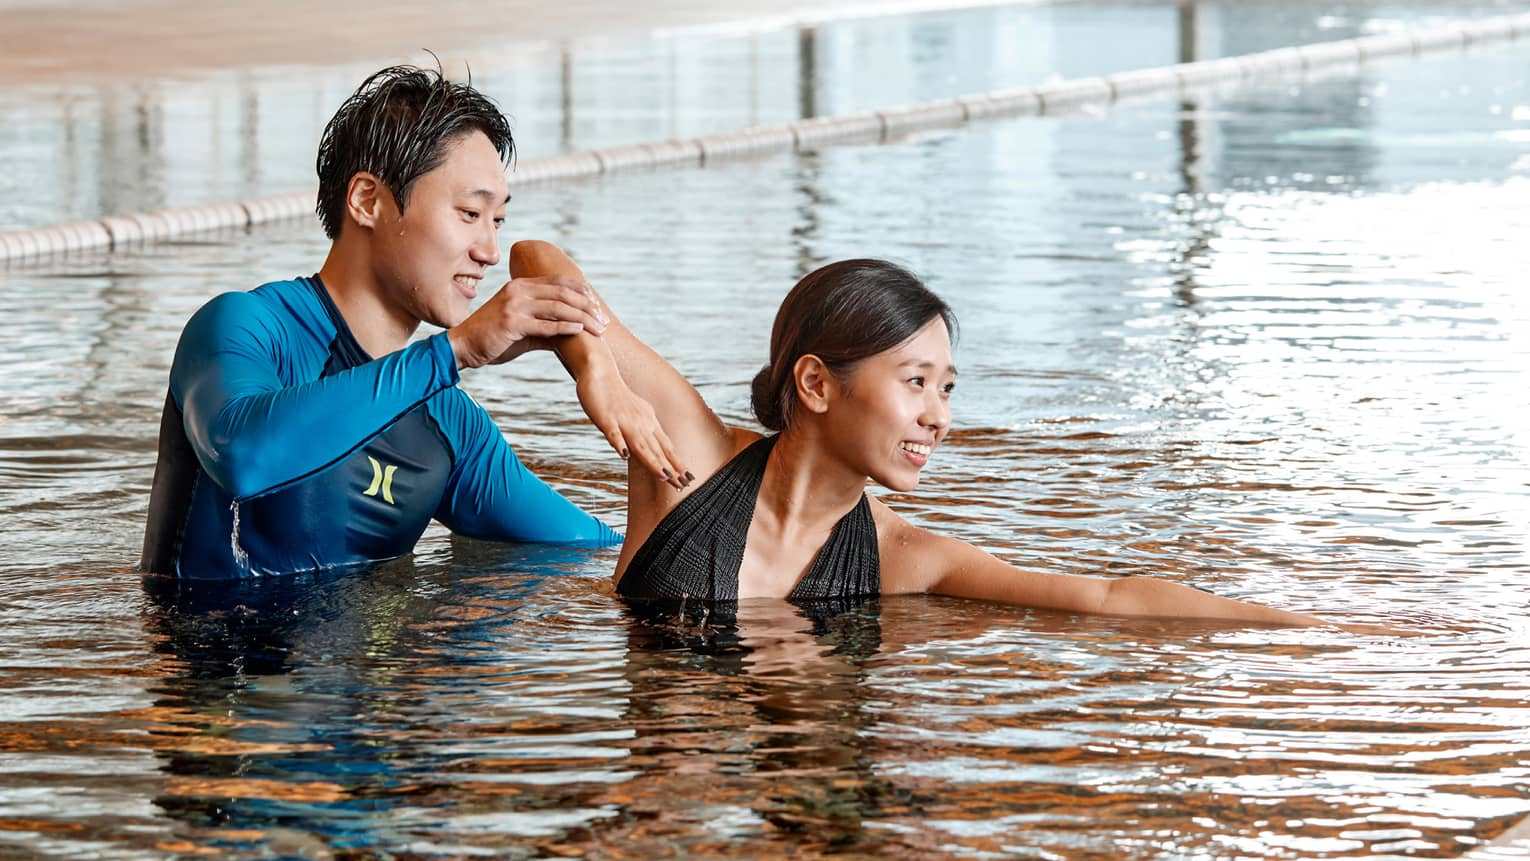 Swimming instructor helps woman position arm in indoor swimming pool